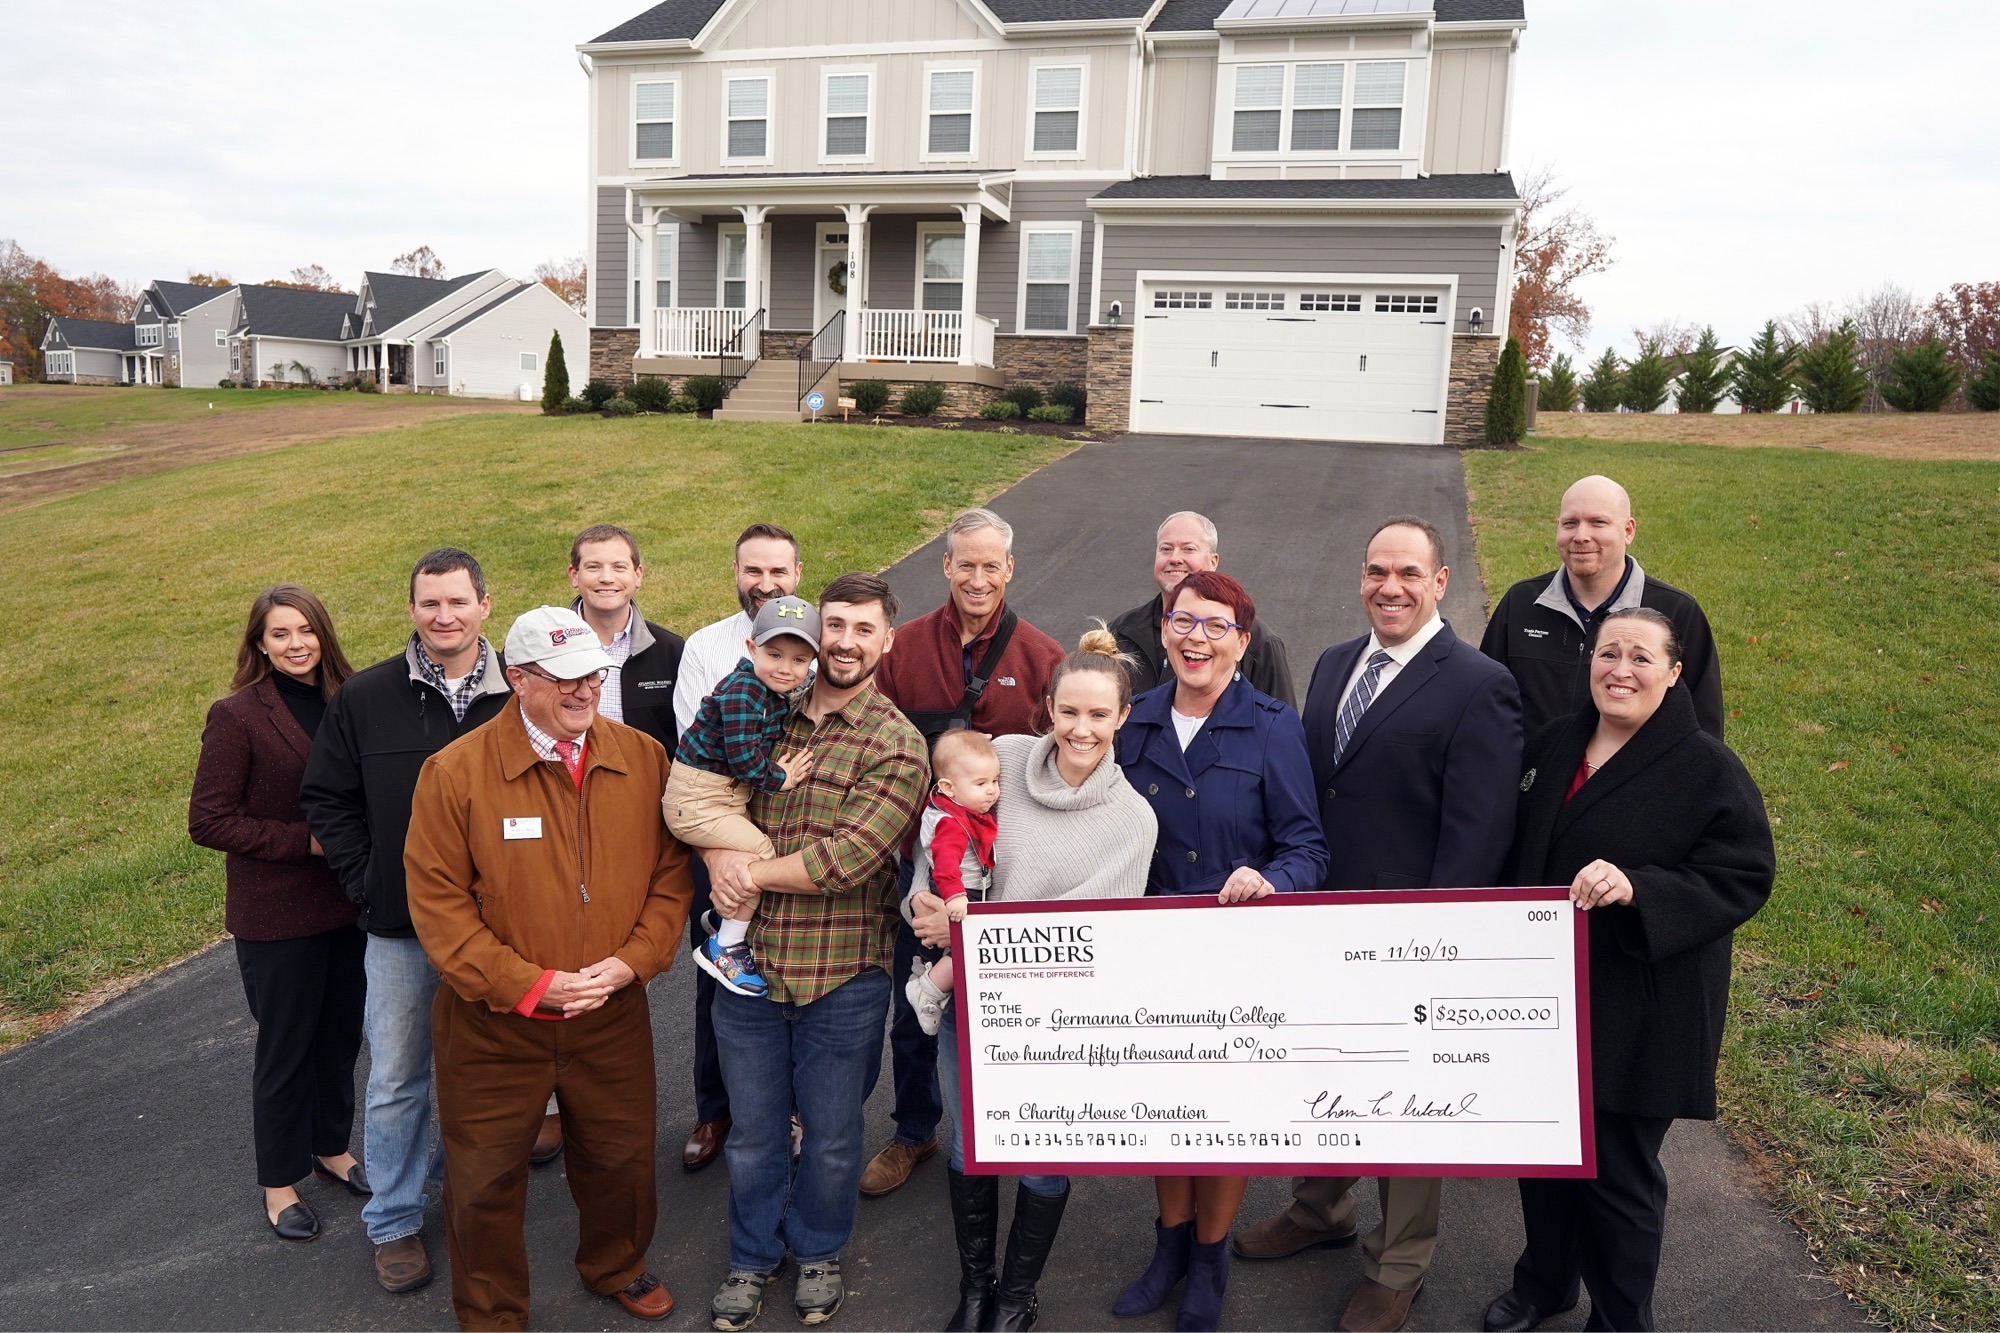 Atlantic Builders and its trade partners donate $250,000 from sale of new home in Stafford to Germanna Community College